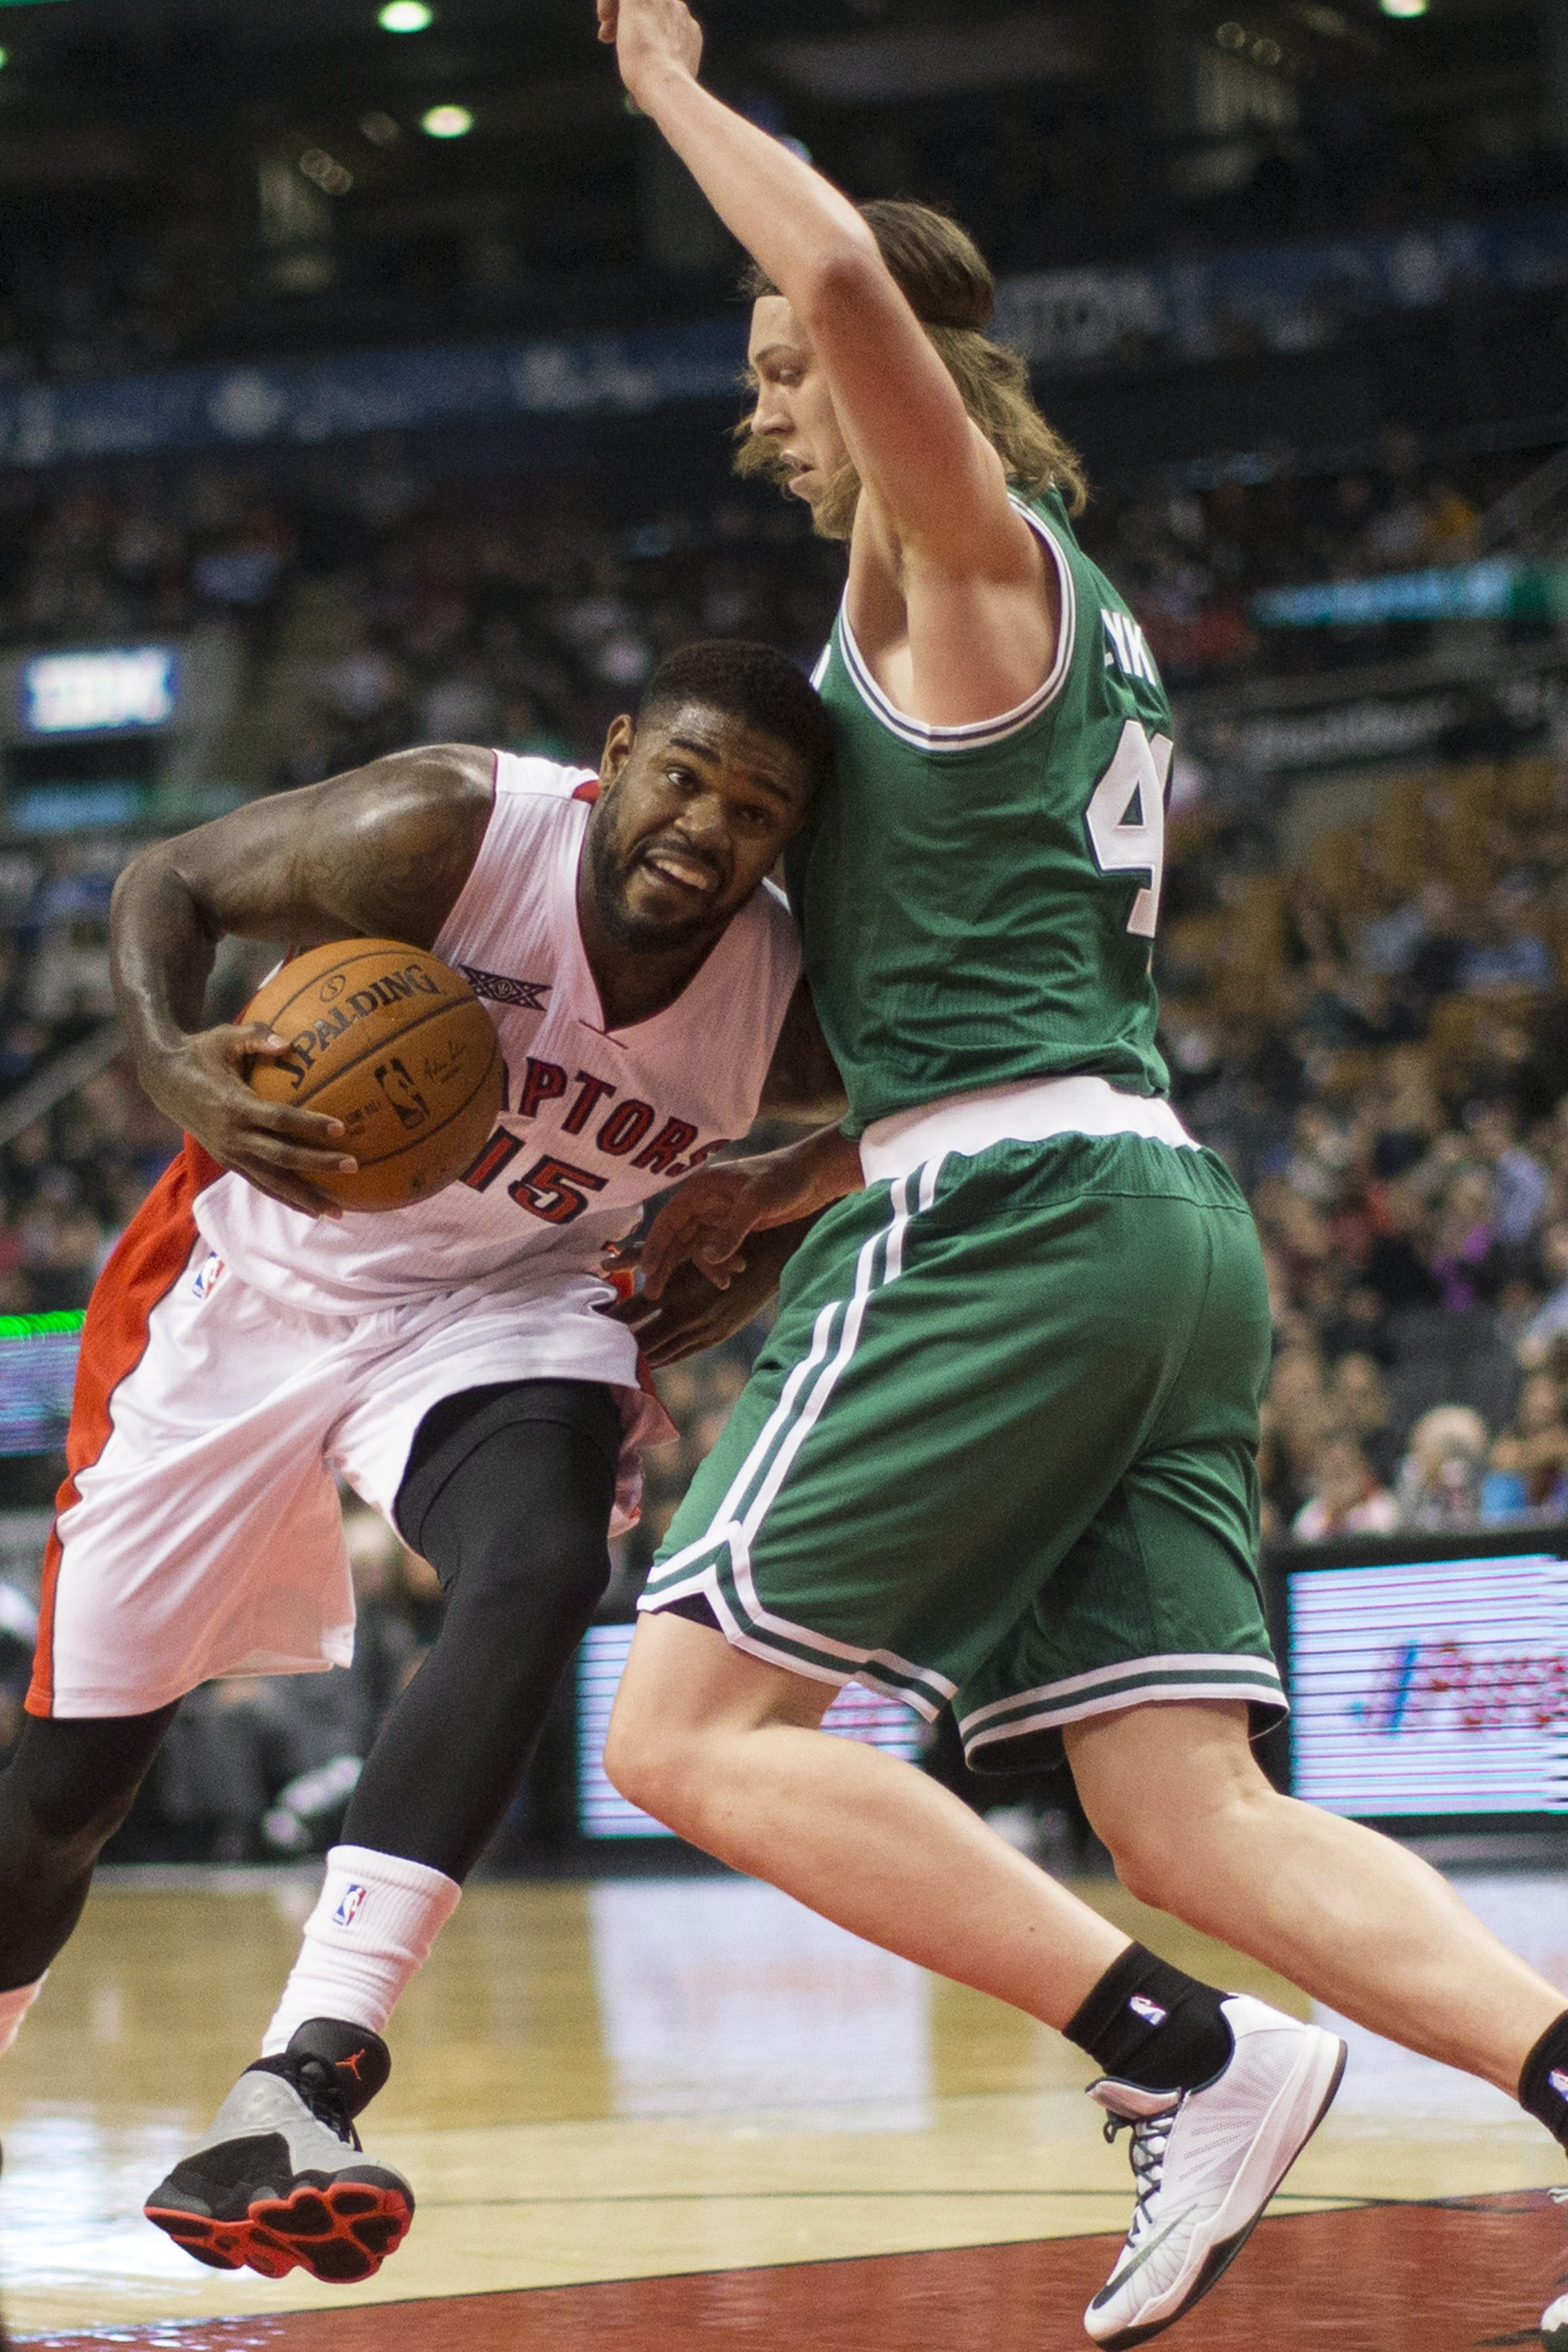 Amir Johnson nuzzles future teammate Kelly Olynyk. (AP Photo/The Canadian Press, Chris Young)